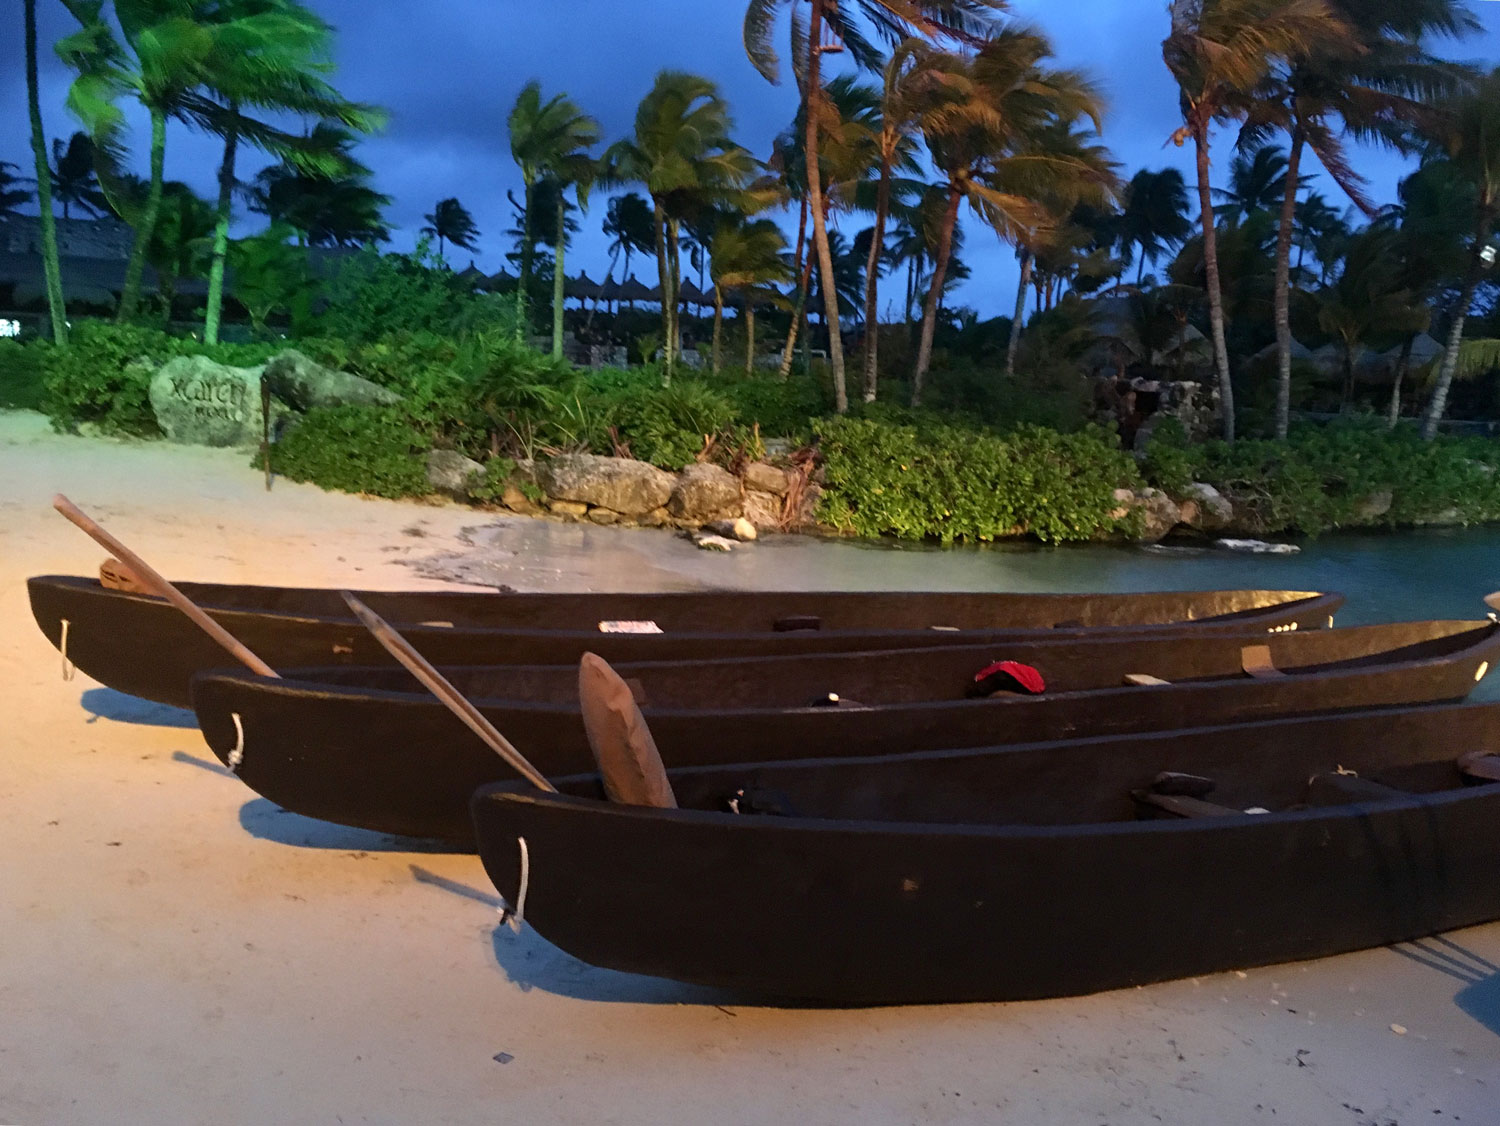 Replica canoes for the crossing to Cozumel, used for the re-enacted journey from Xcaret.